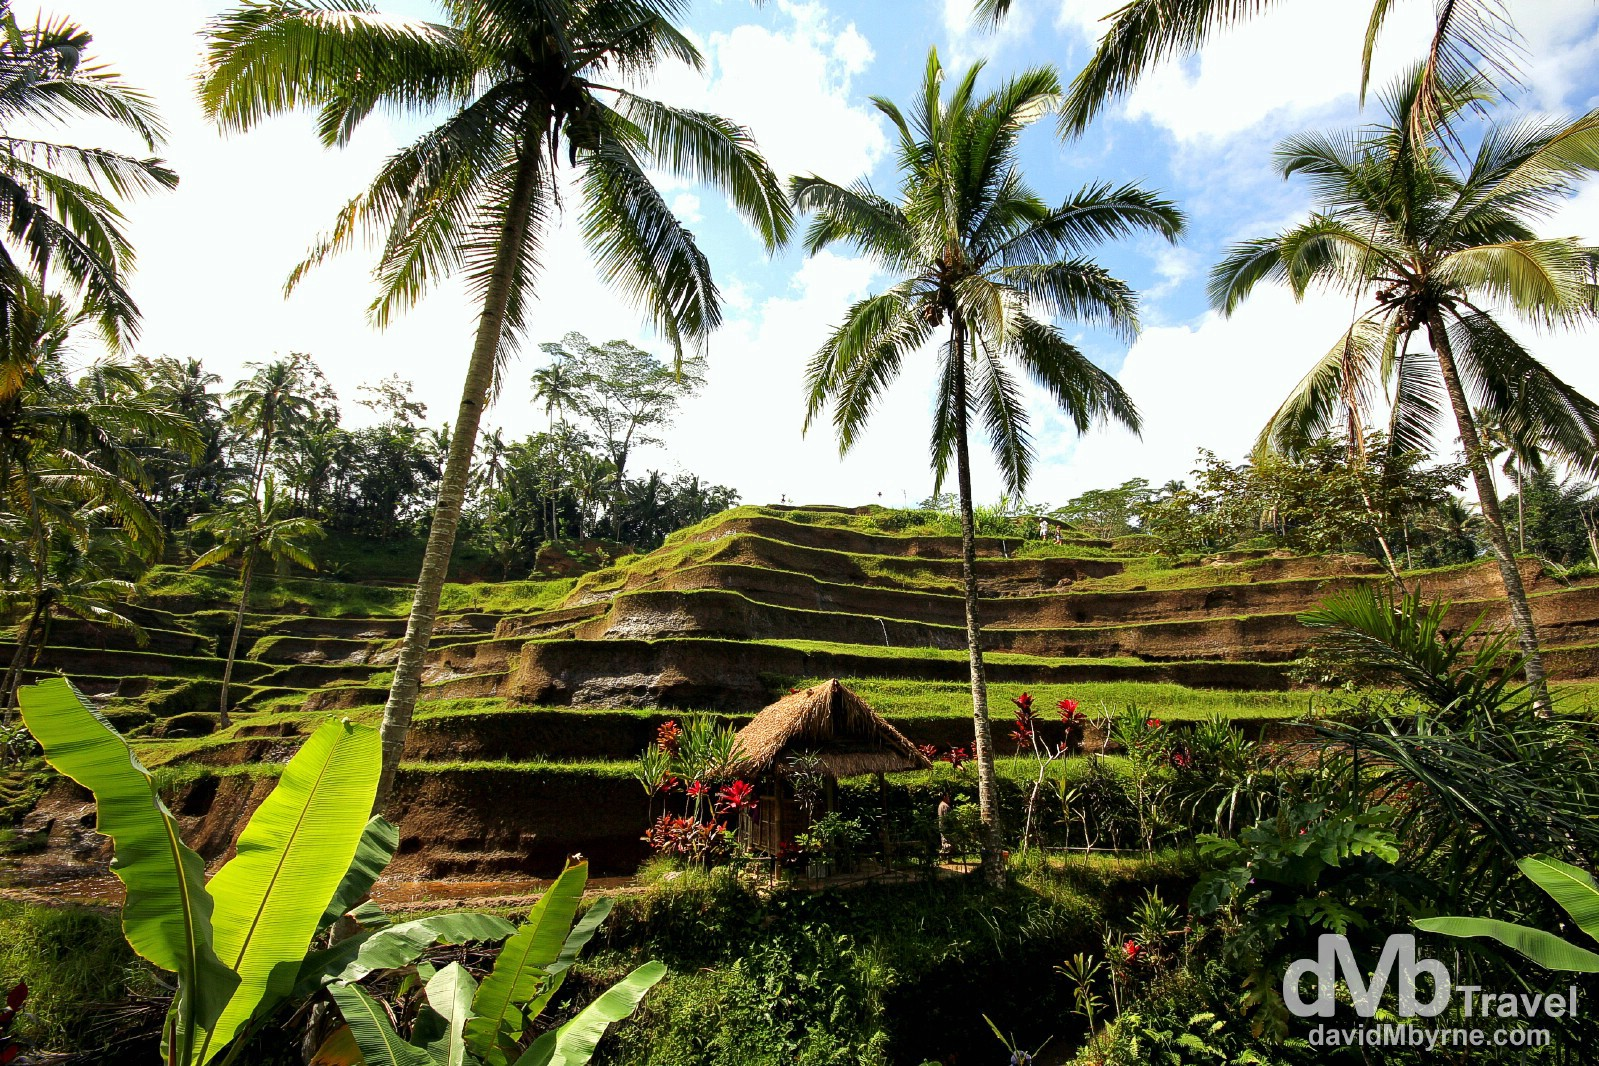 Stepped rice terraces in Ceking, Bali, Indonesia. June 19th 2012.